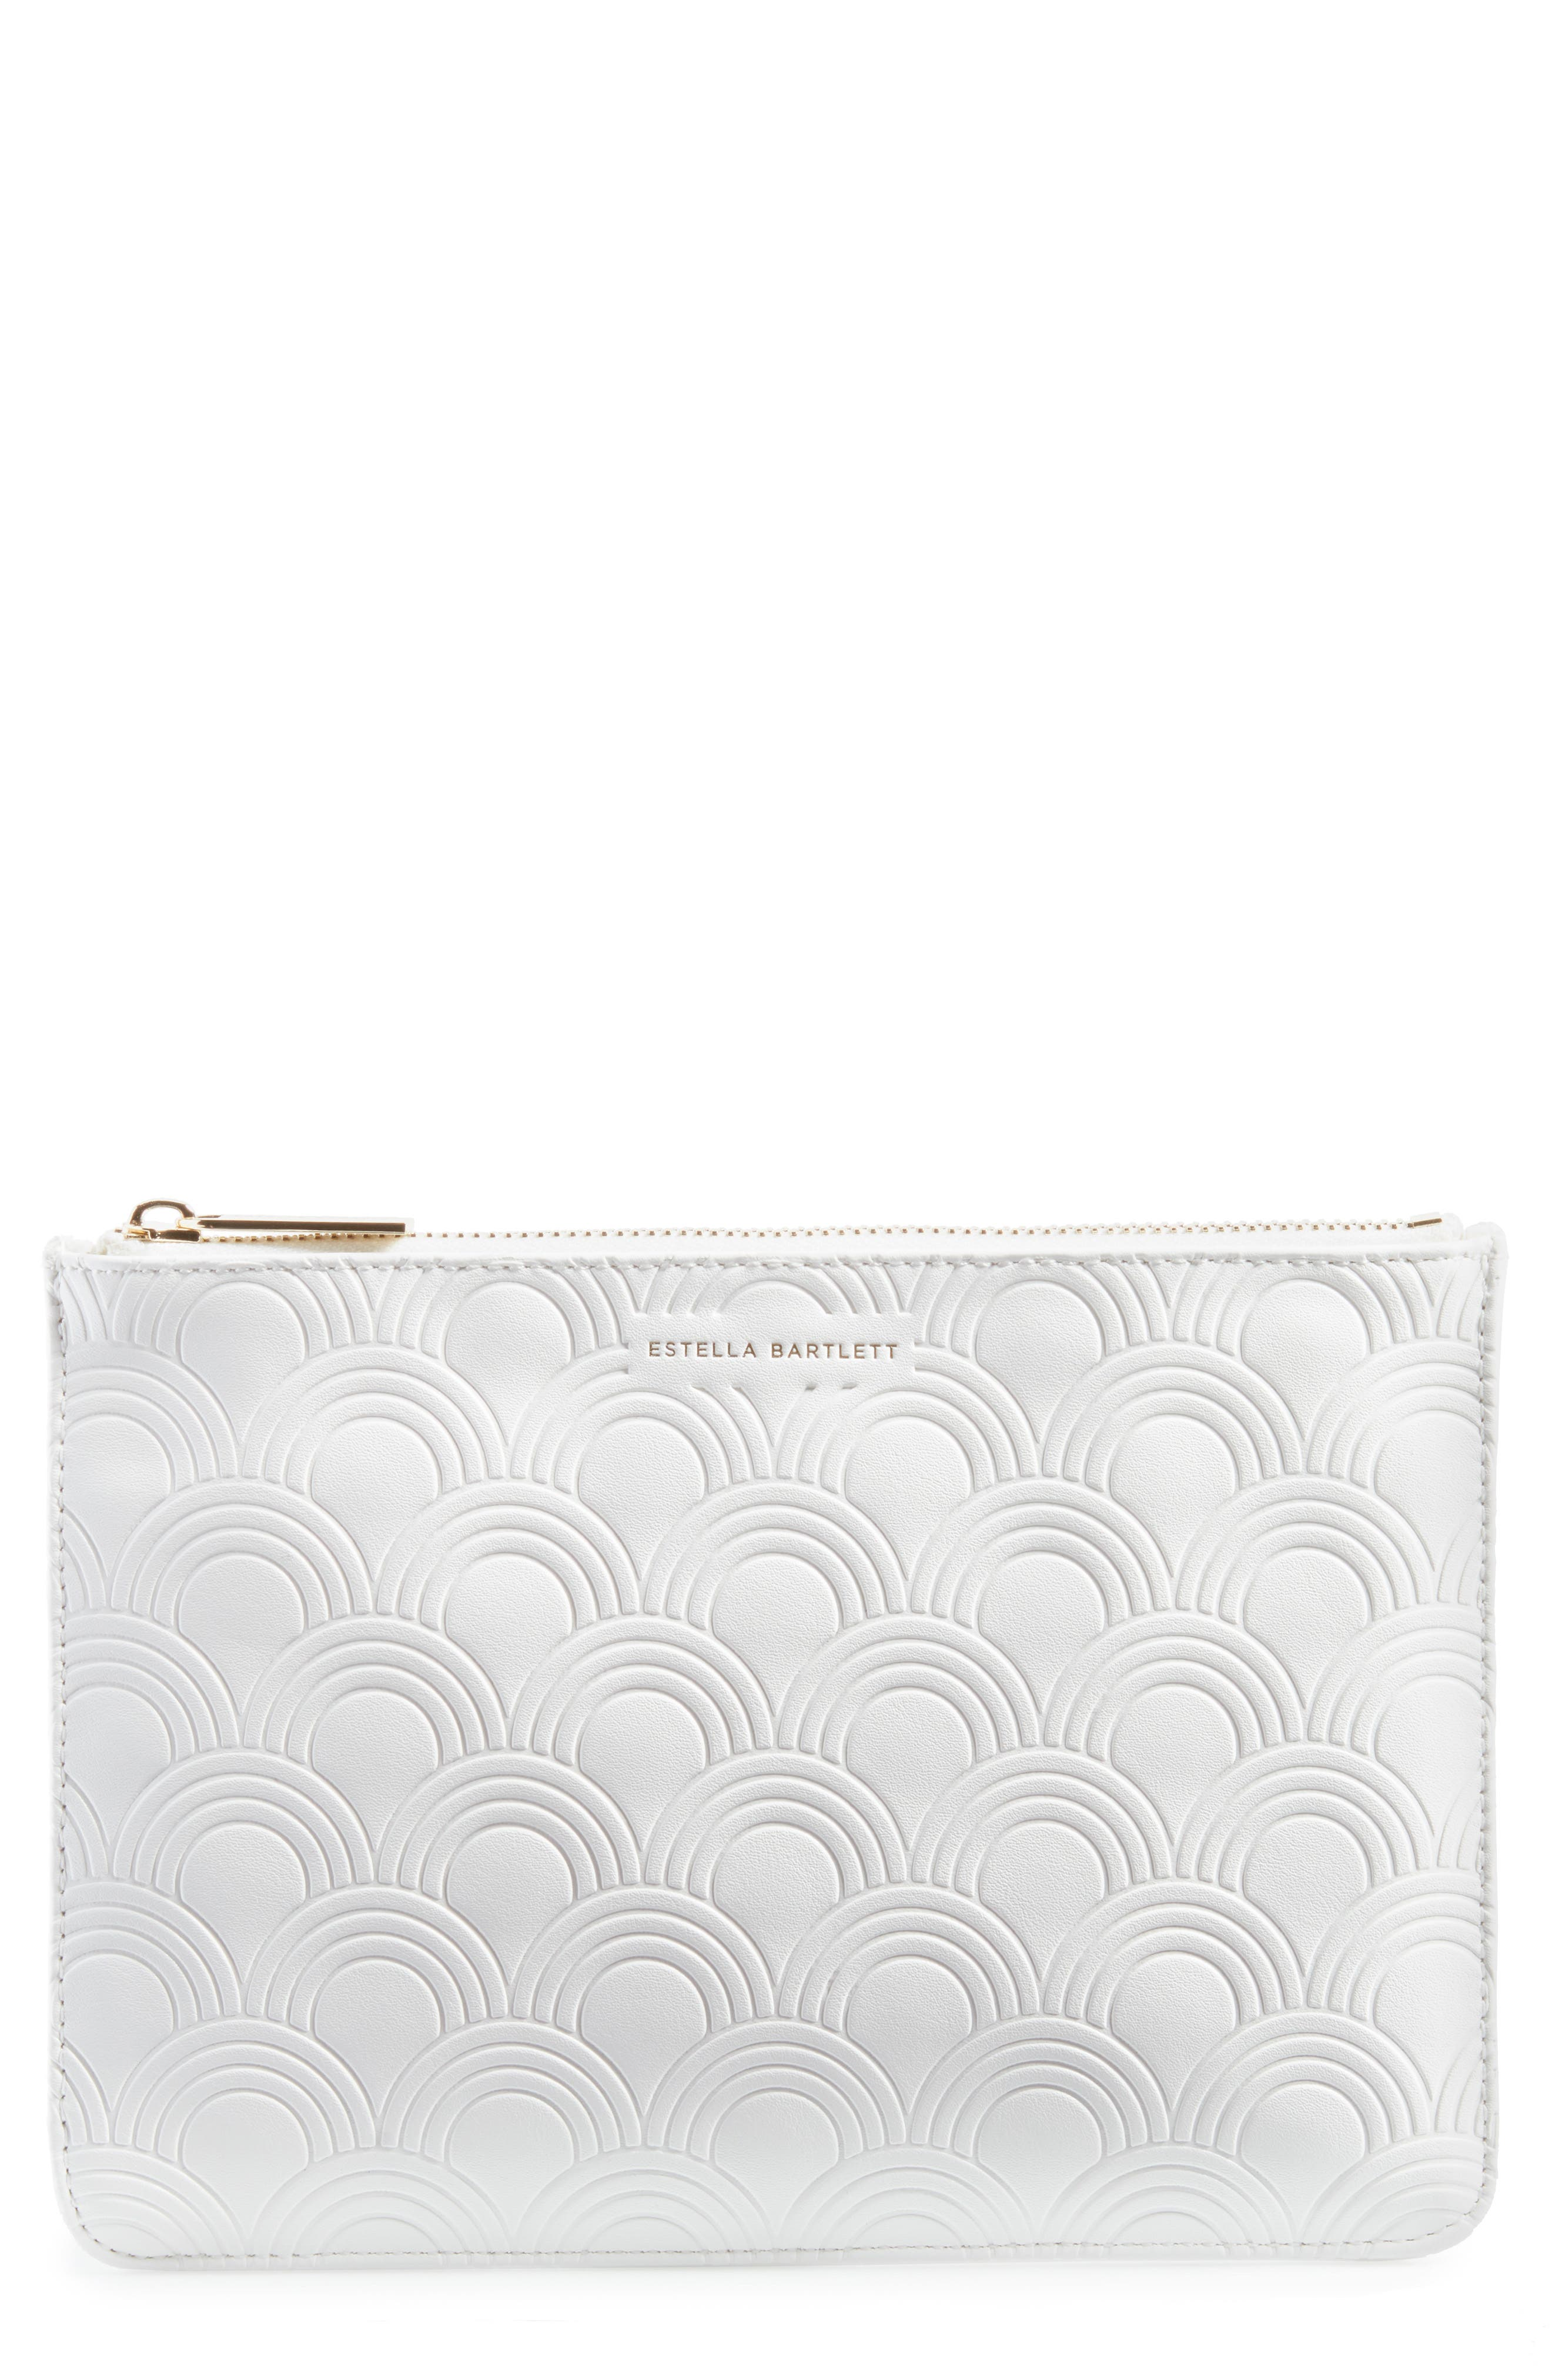 Medium Embossed Faux Leather Pouch,                             Main thumbnail 1, color,                             Ivory